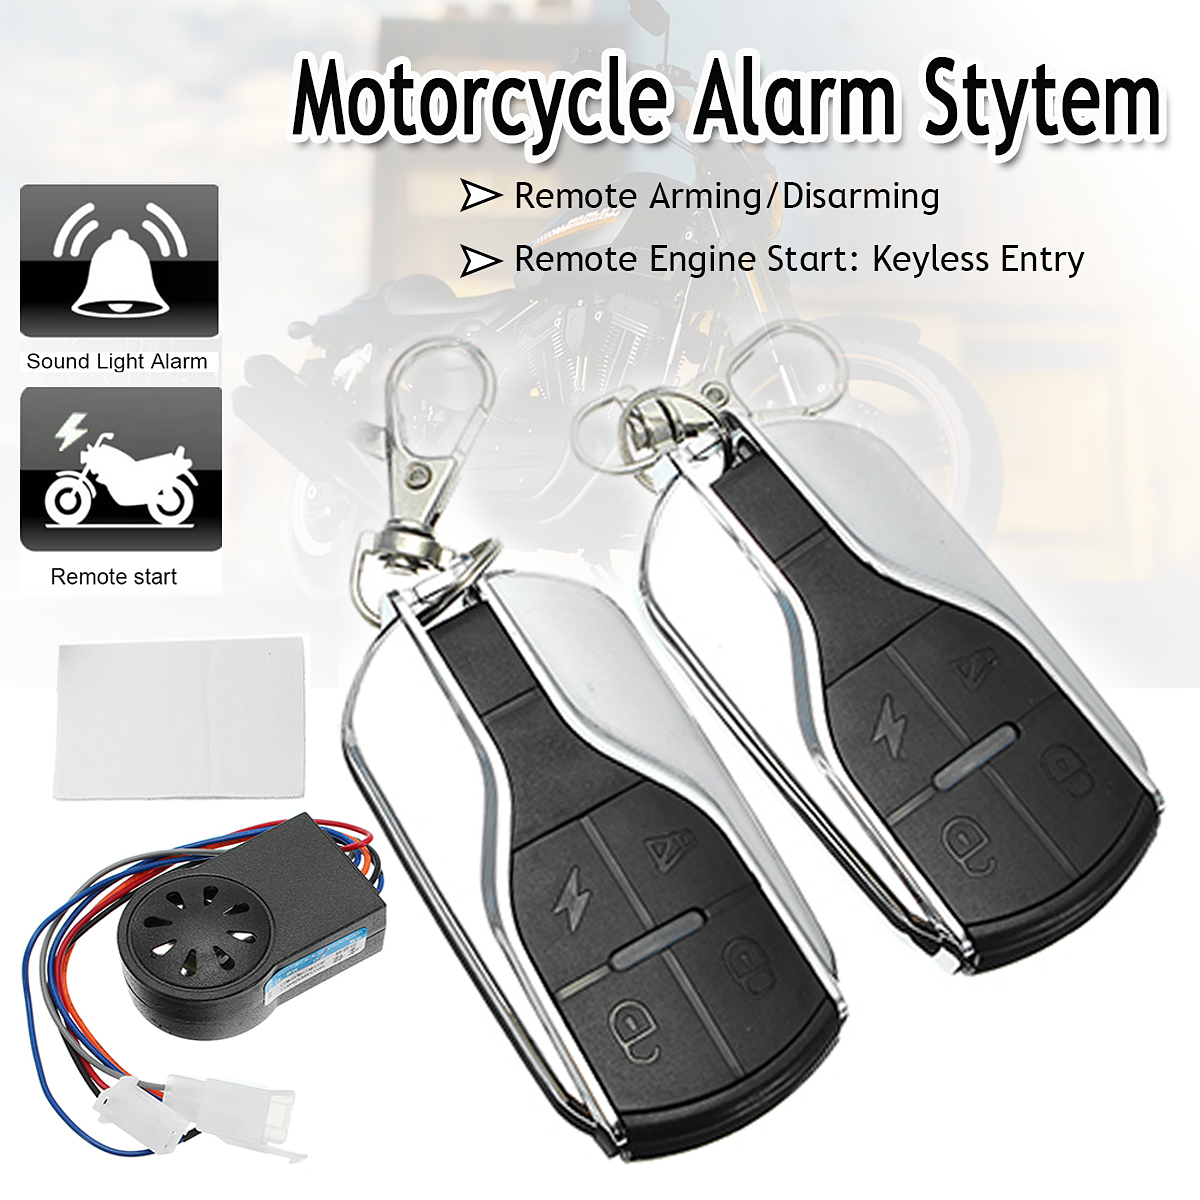 48V-60V Scooter Remote Control Anti Theft Alarm Security System Home Security Safety Motorcycle Bike48V-60V Scooter Remote Control Anti Theft Alarm Security System Home Security Safety Motorcycle Bike